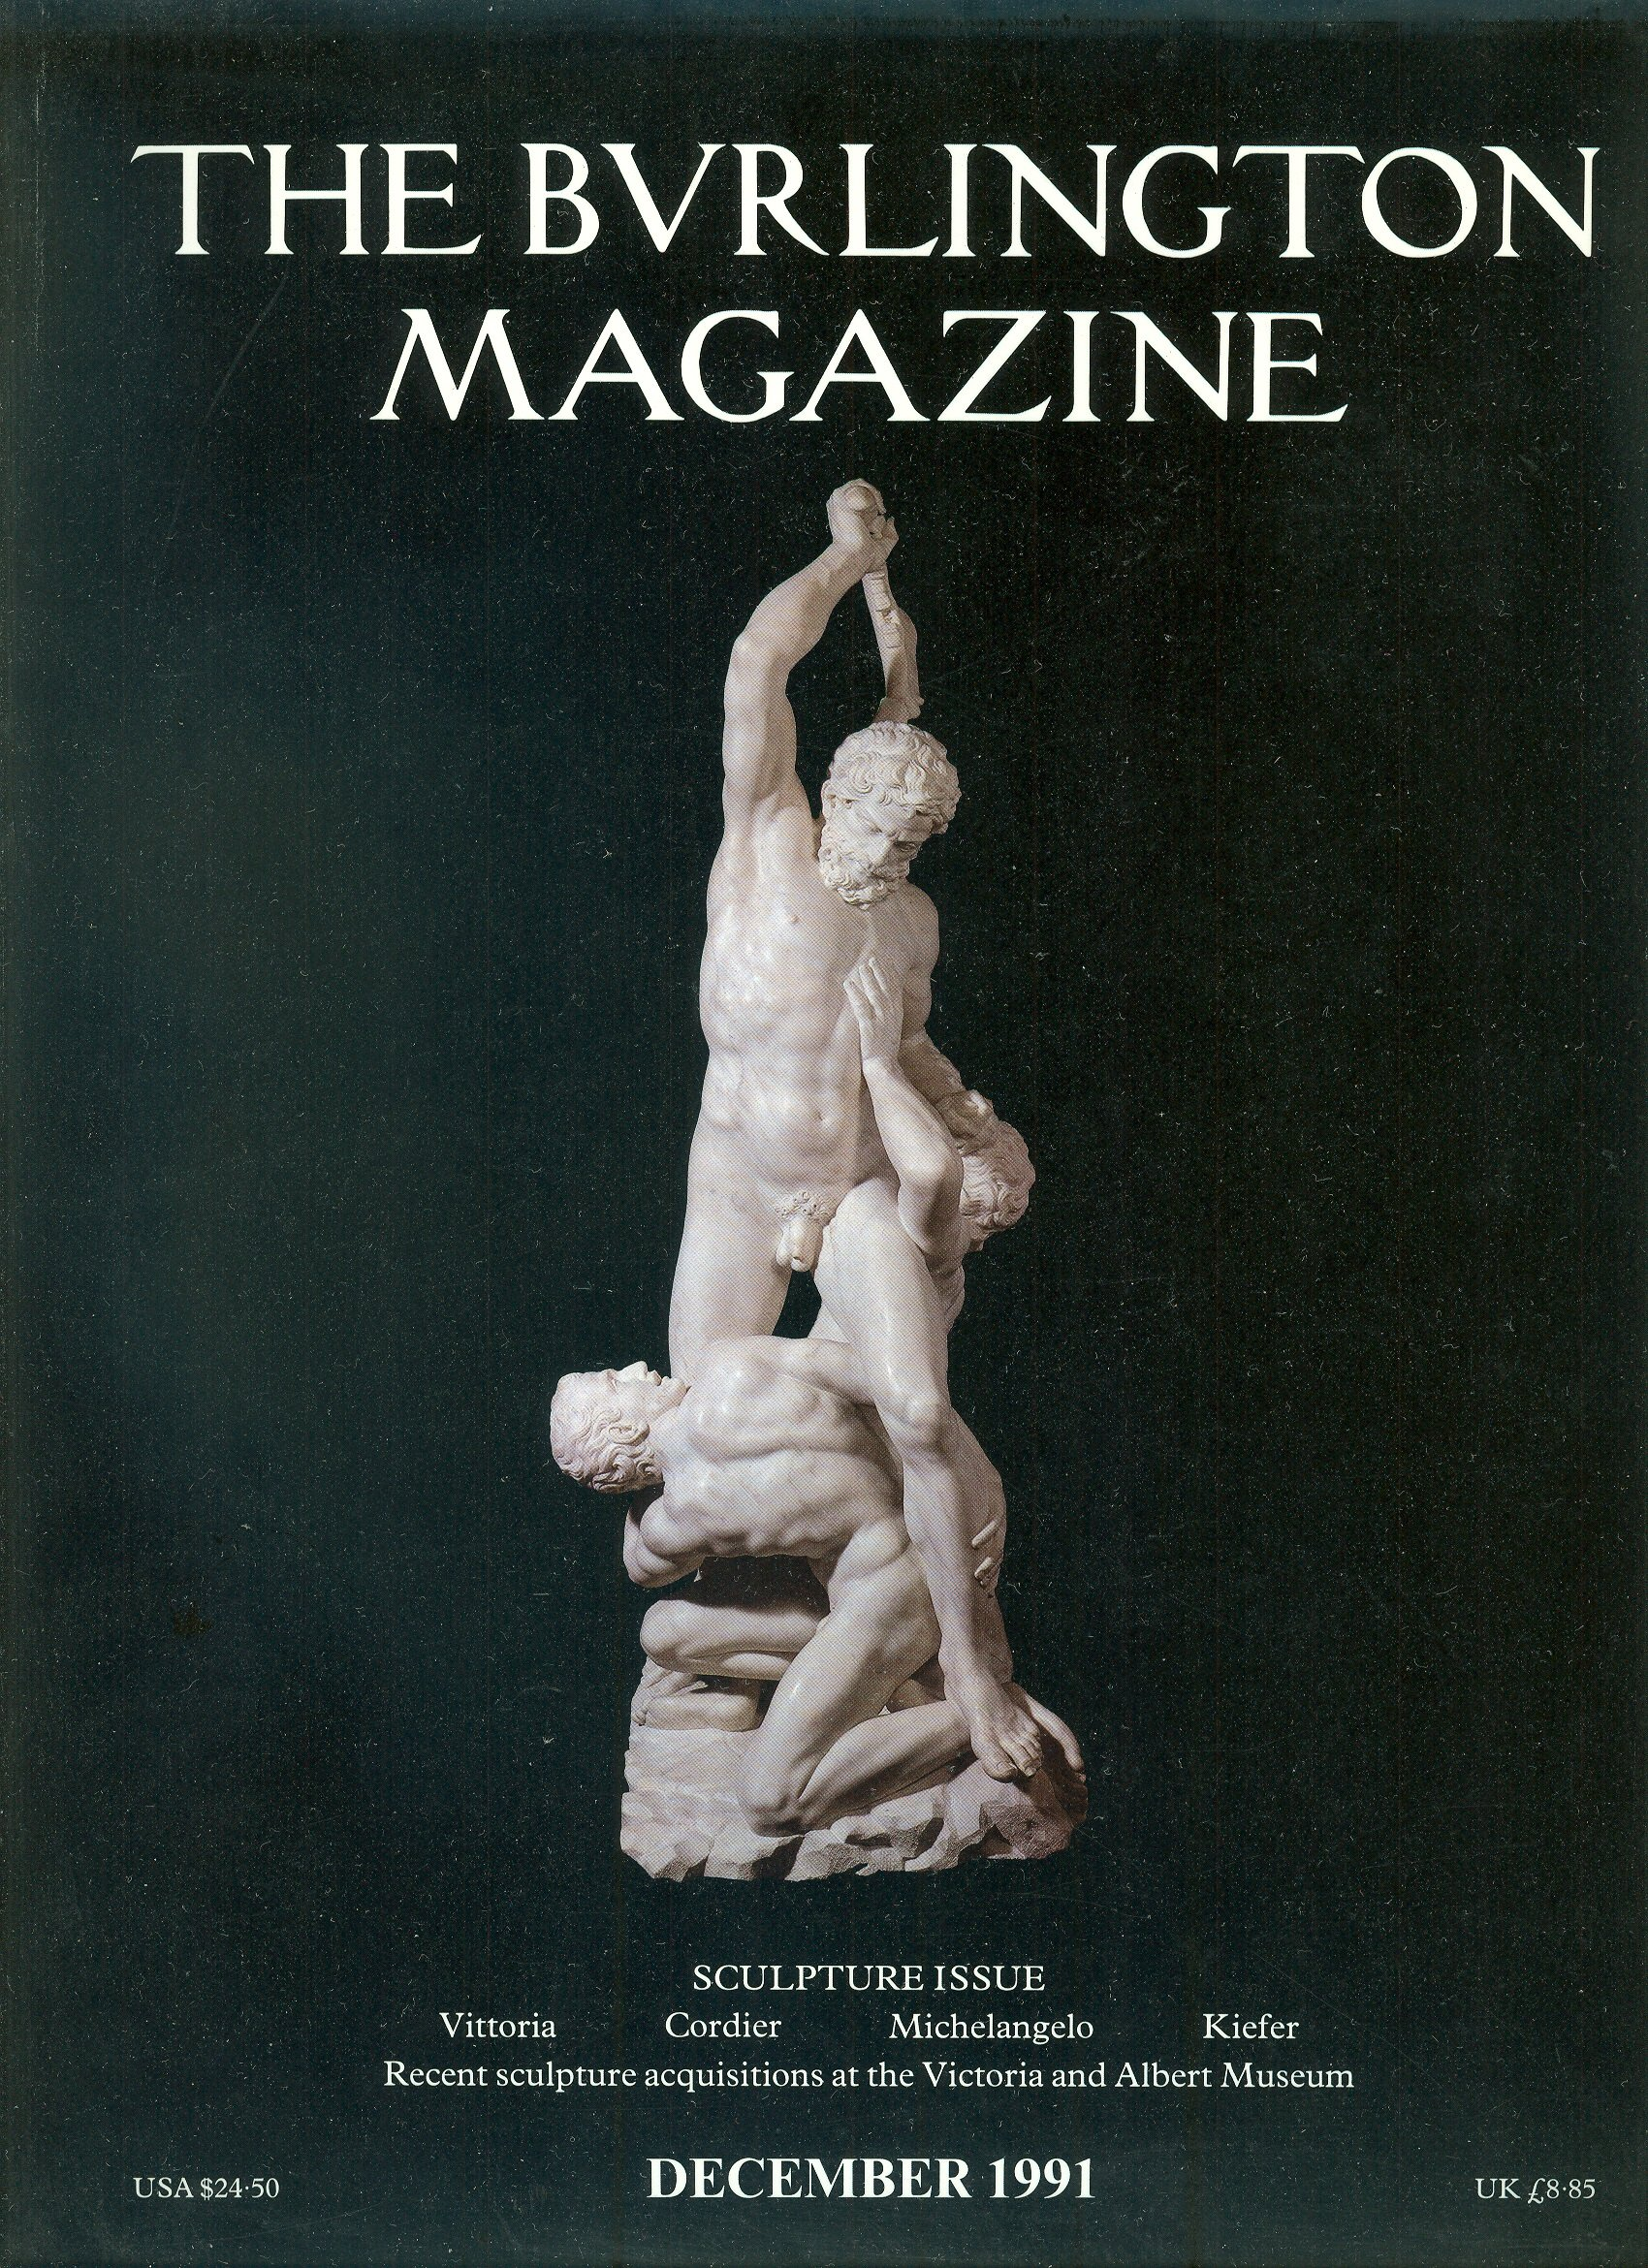 the burlington magazine volume cxxxiii number 1065 december 1991 sculpture issue vittoria cordier michelangelo kiefer recent sculpture acquisitions at the victoria and albert museum